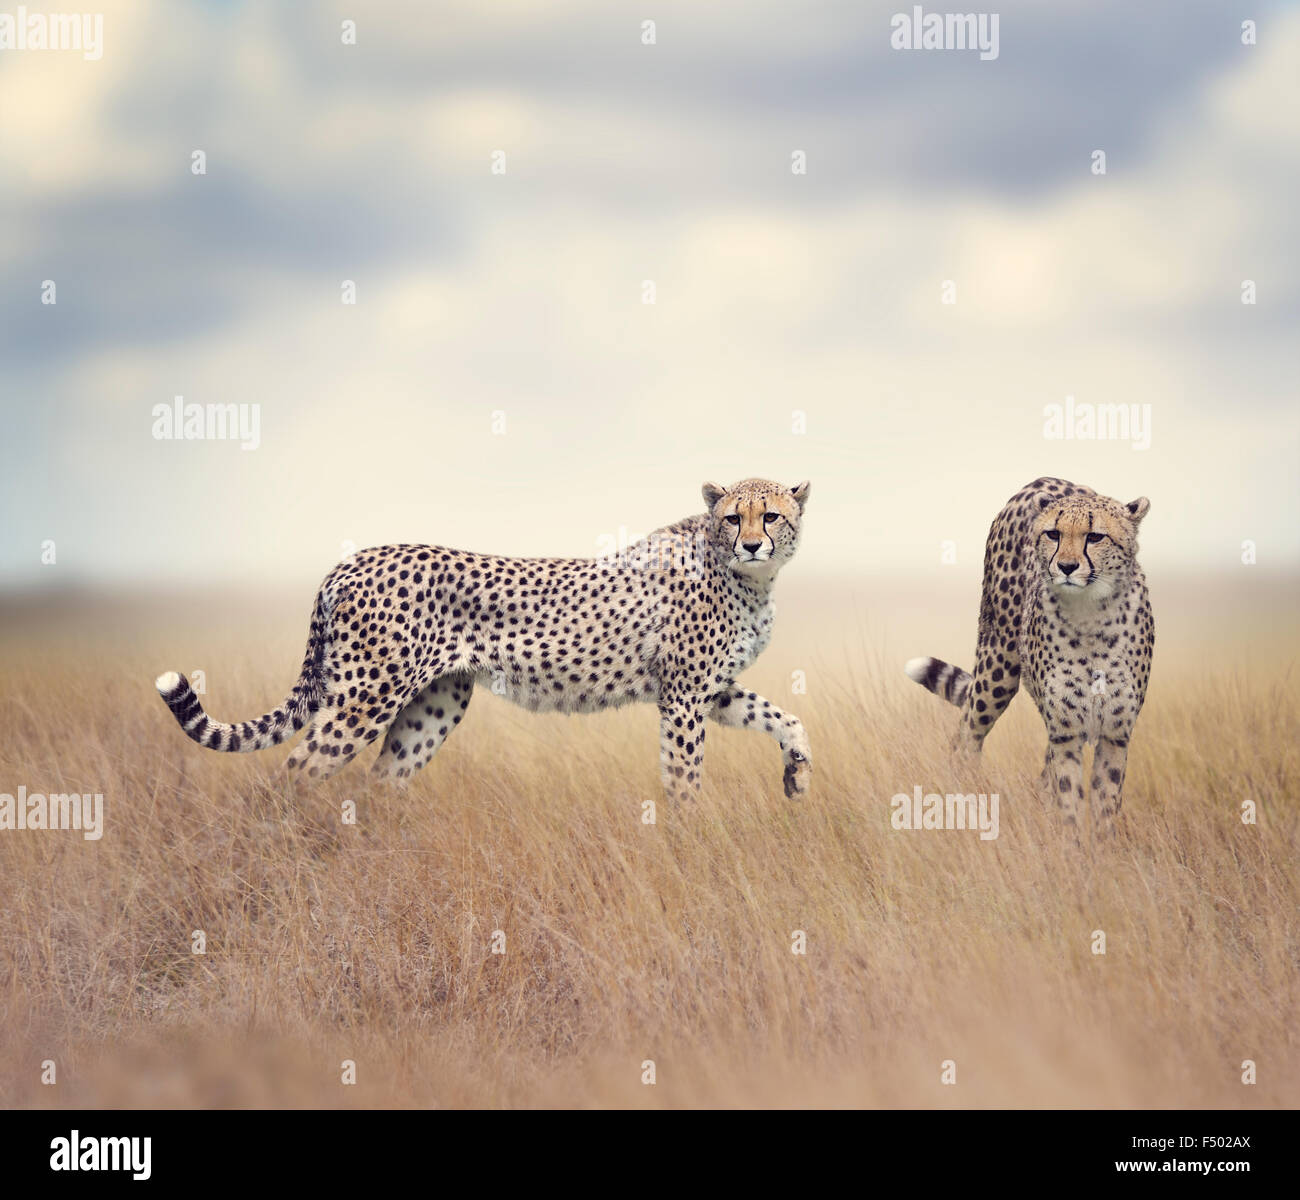 Two Cheetahs Walking In Tall Grass - Stock Image